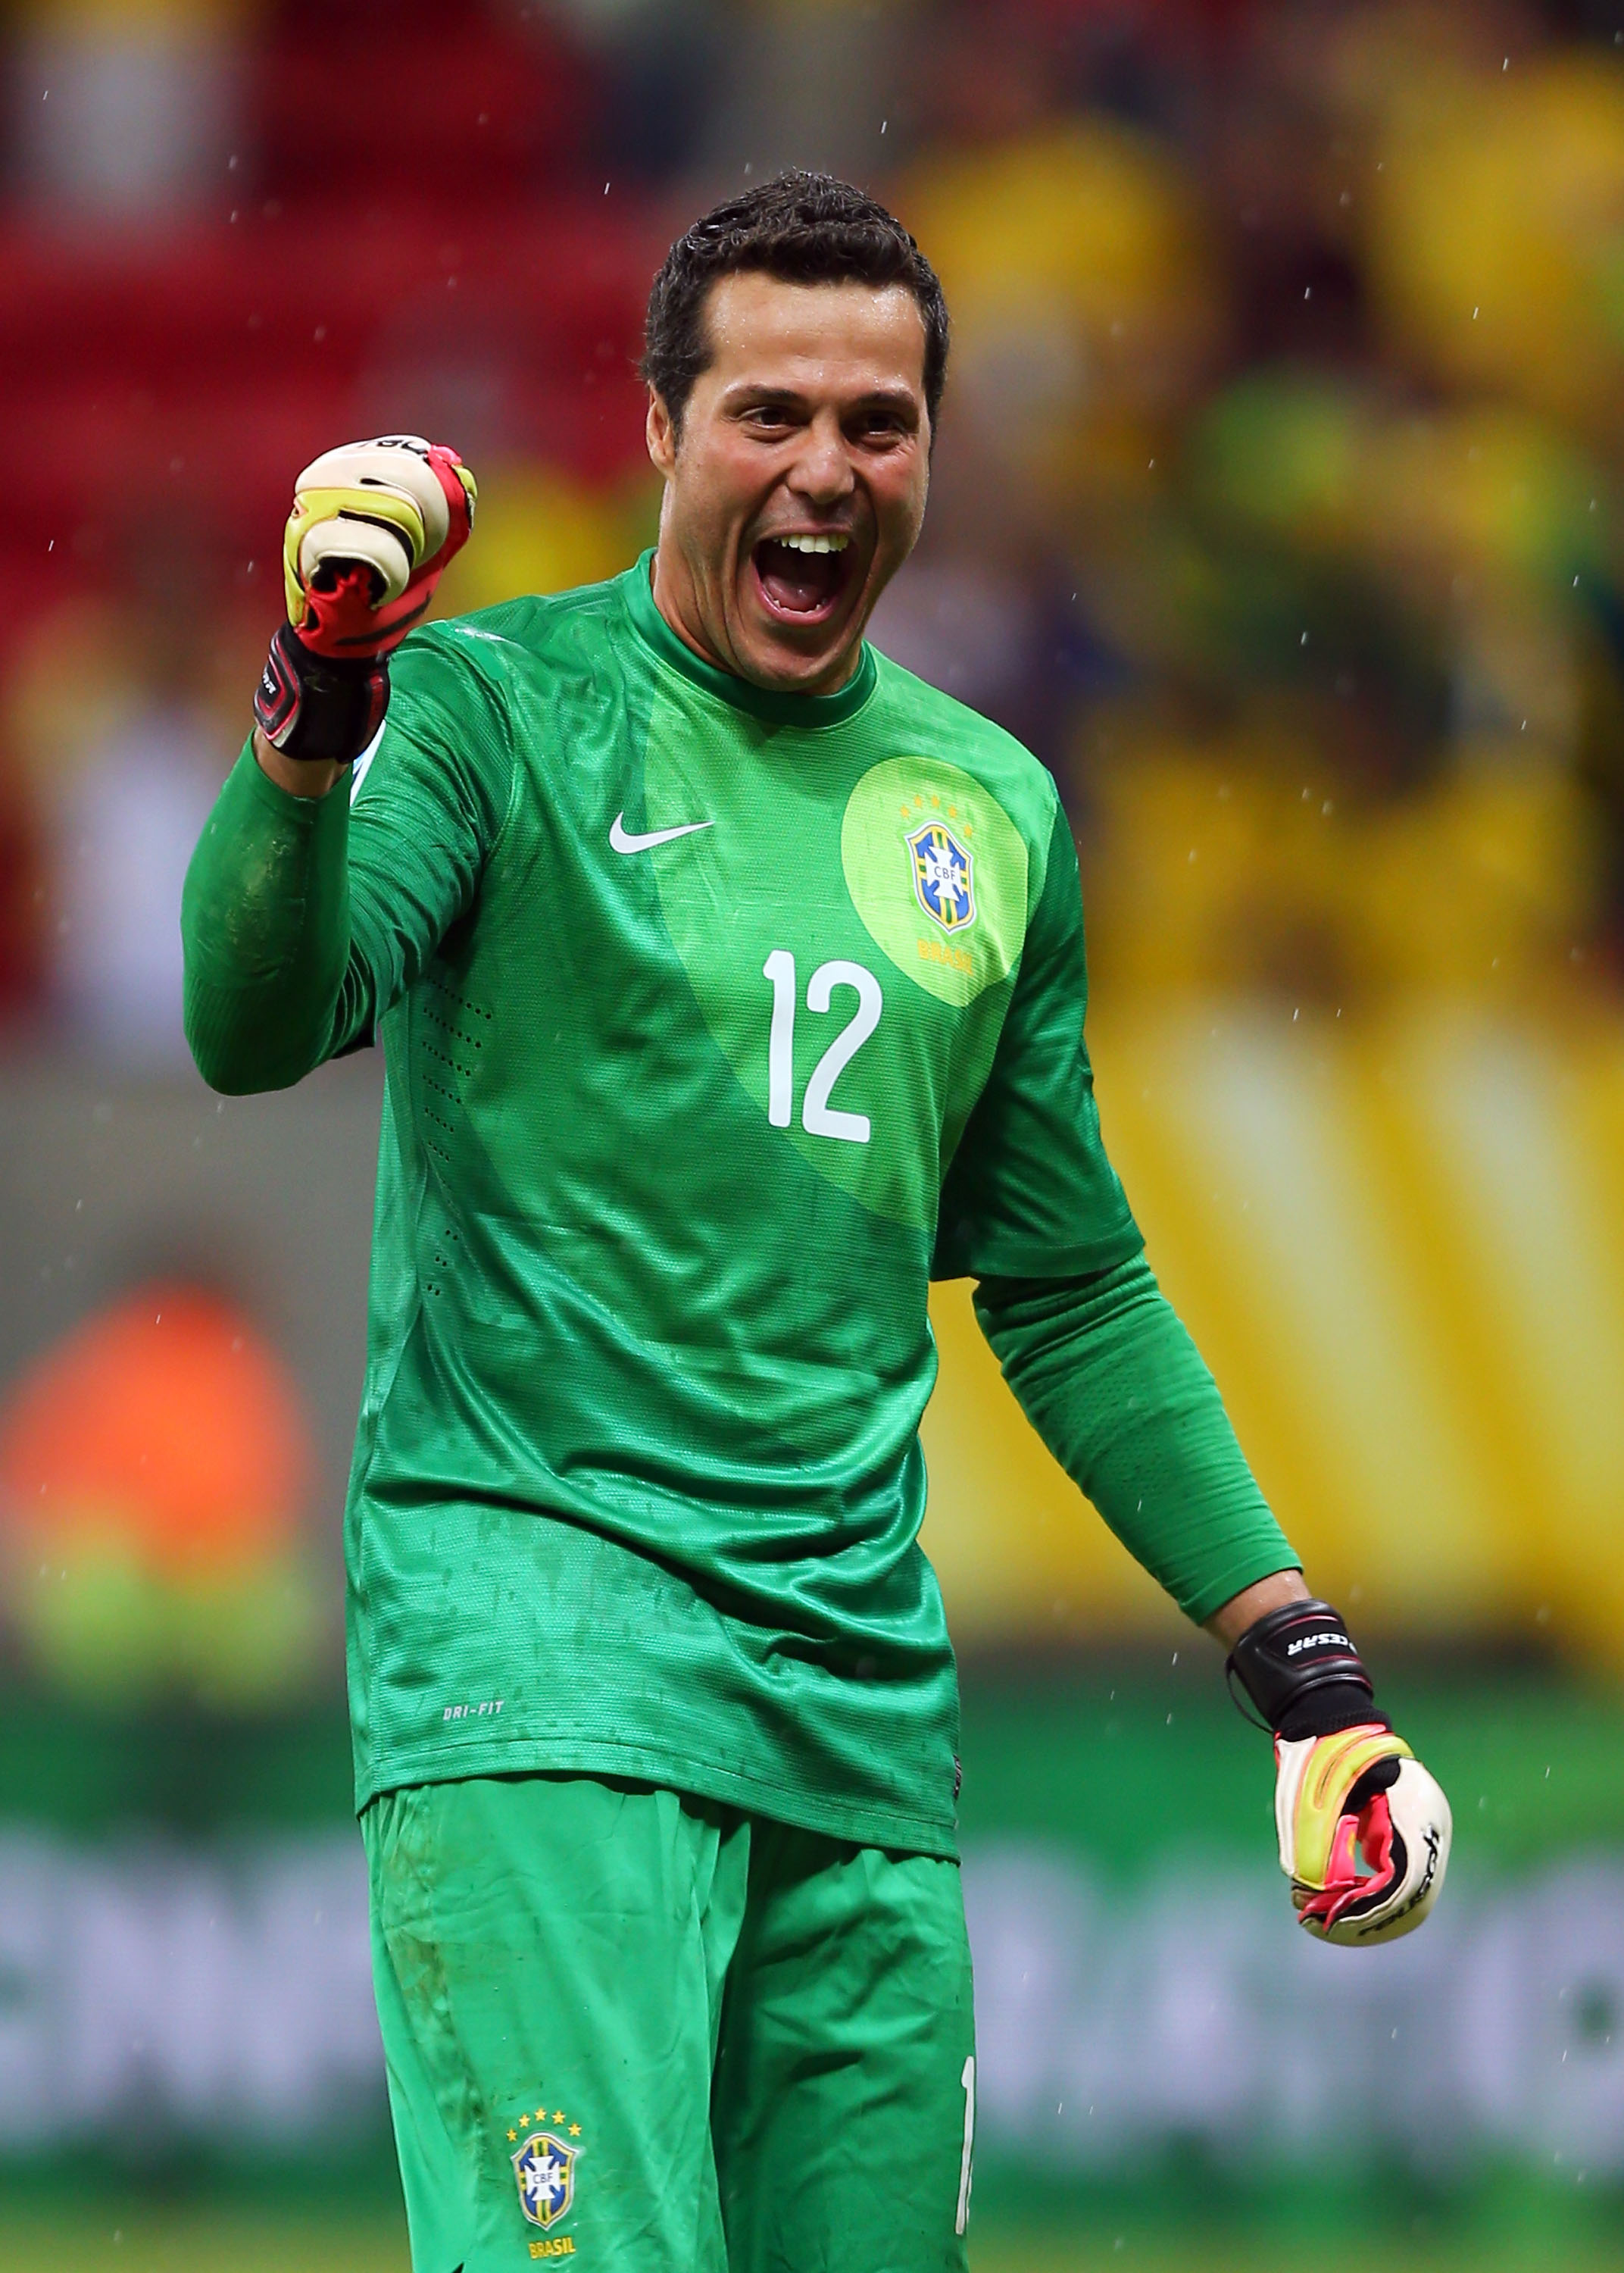 Arsenal face battle with Roma and Fiorentina to land QPR star Julio Cesar